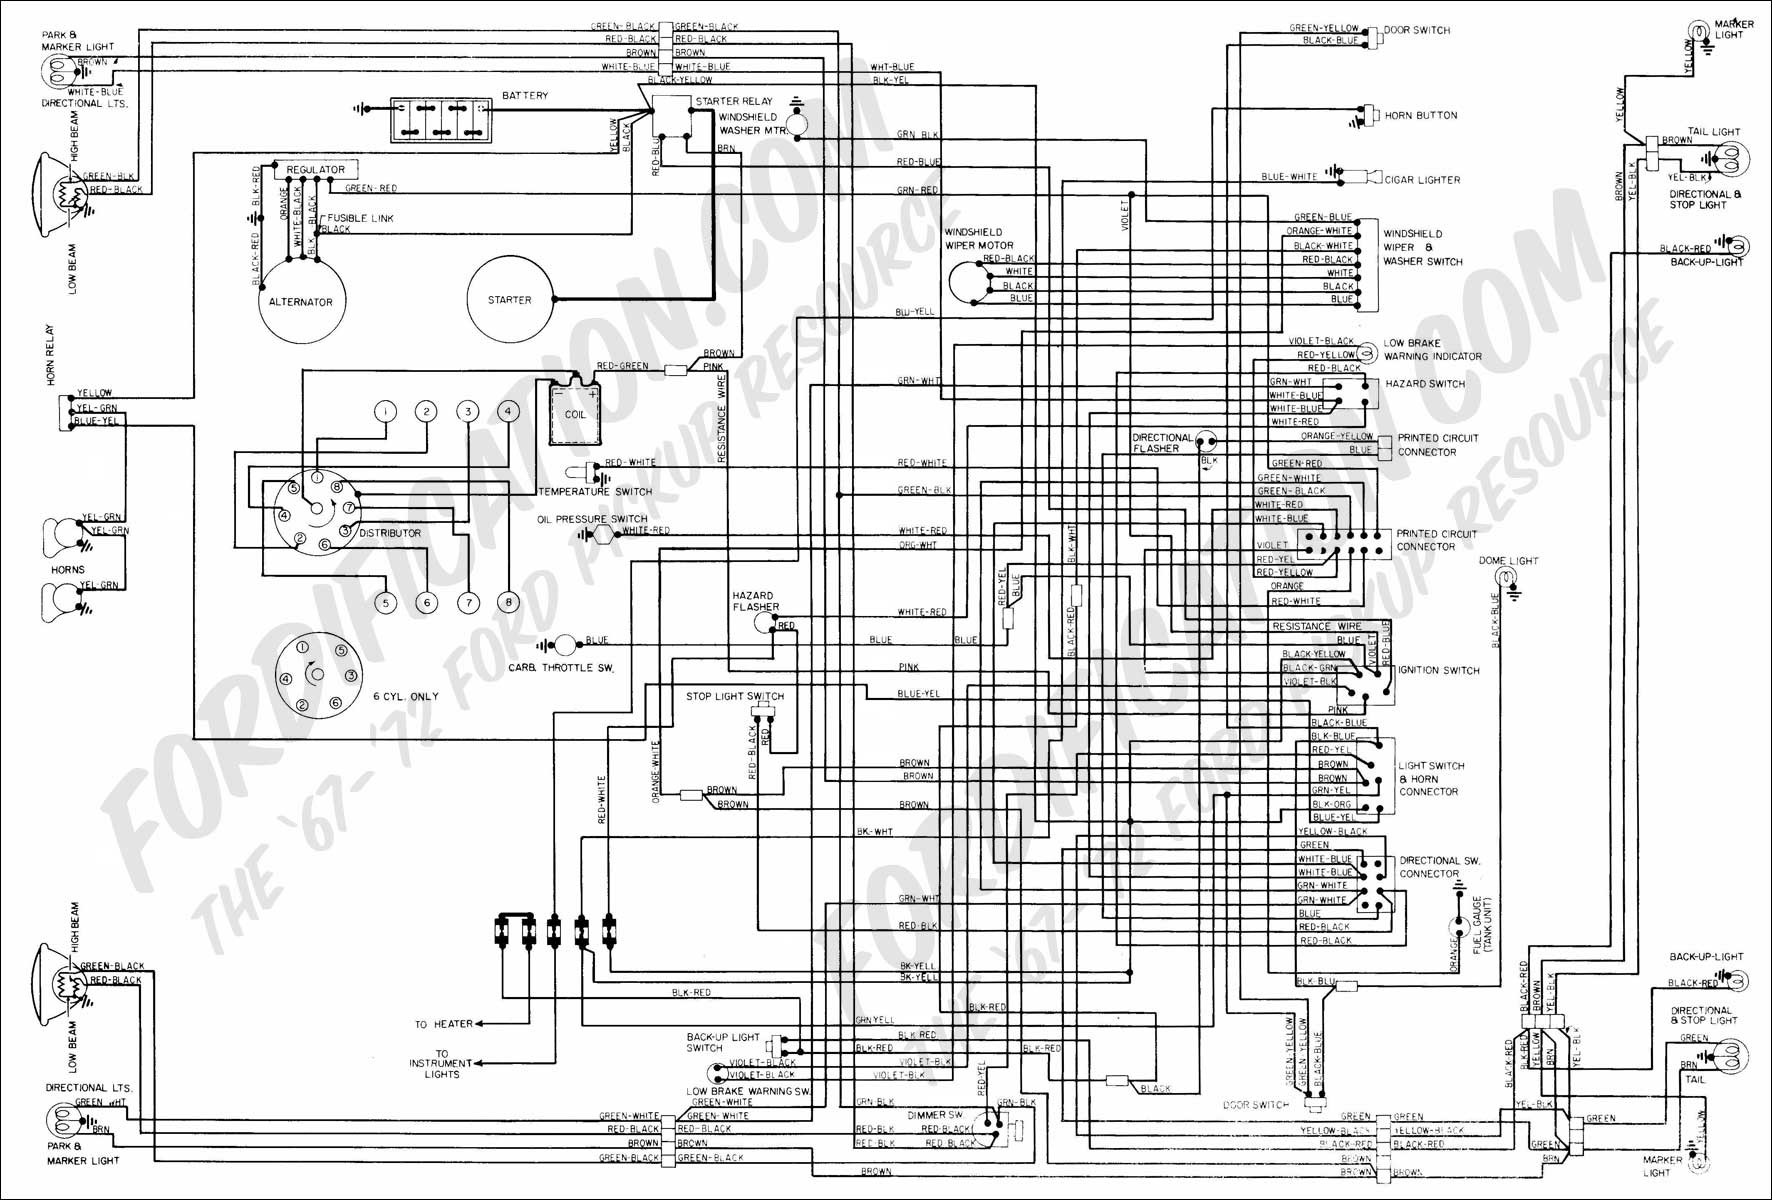 2007 ford f150 wiring diagram 1992 honda civic fuse 97 under dash get free image about